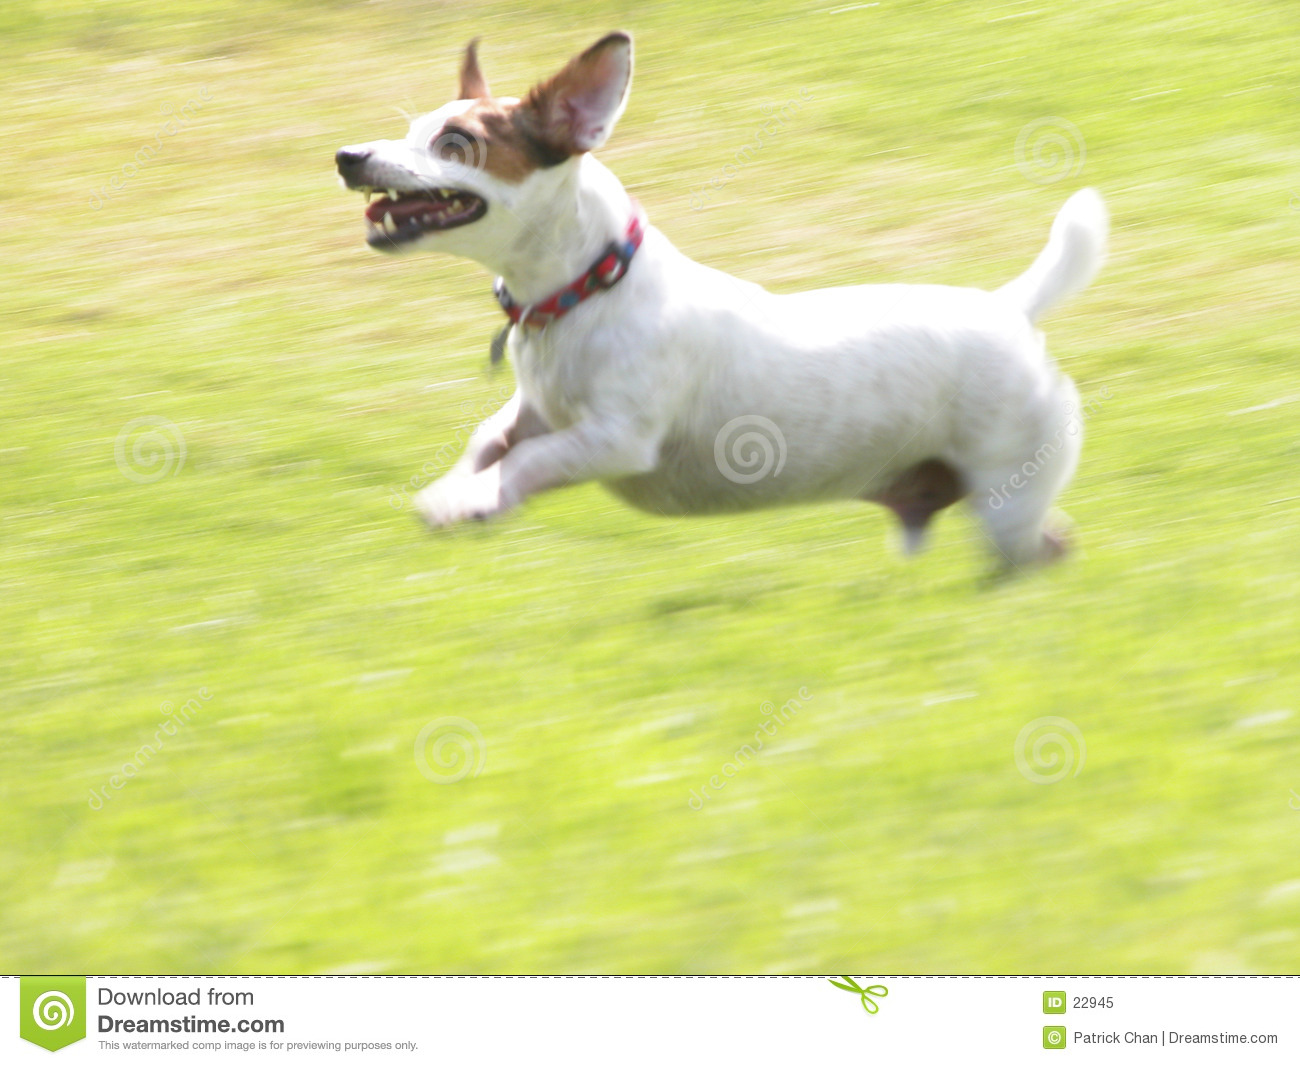 Jrt jacob 01 jack terrier russell